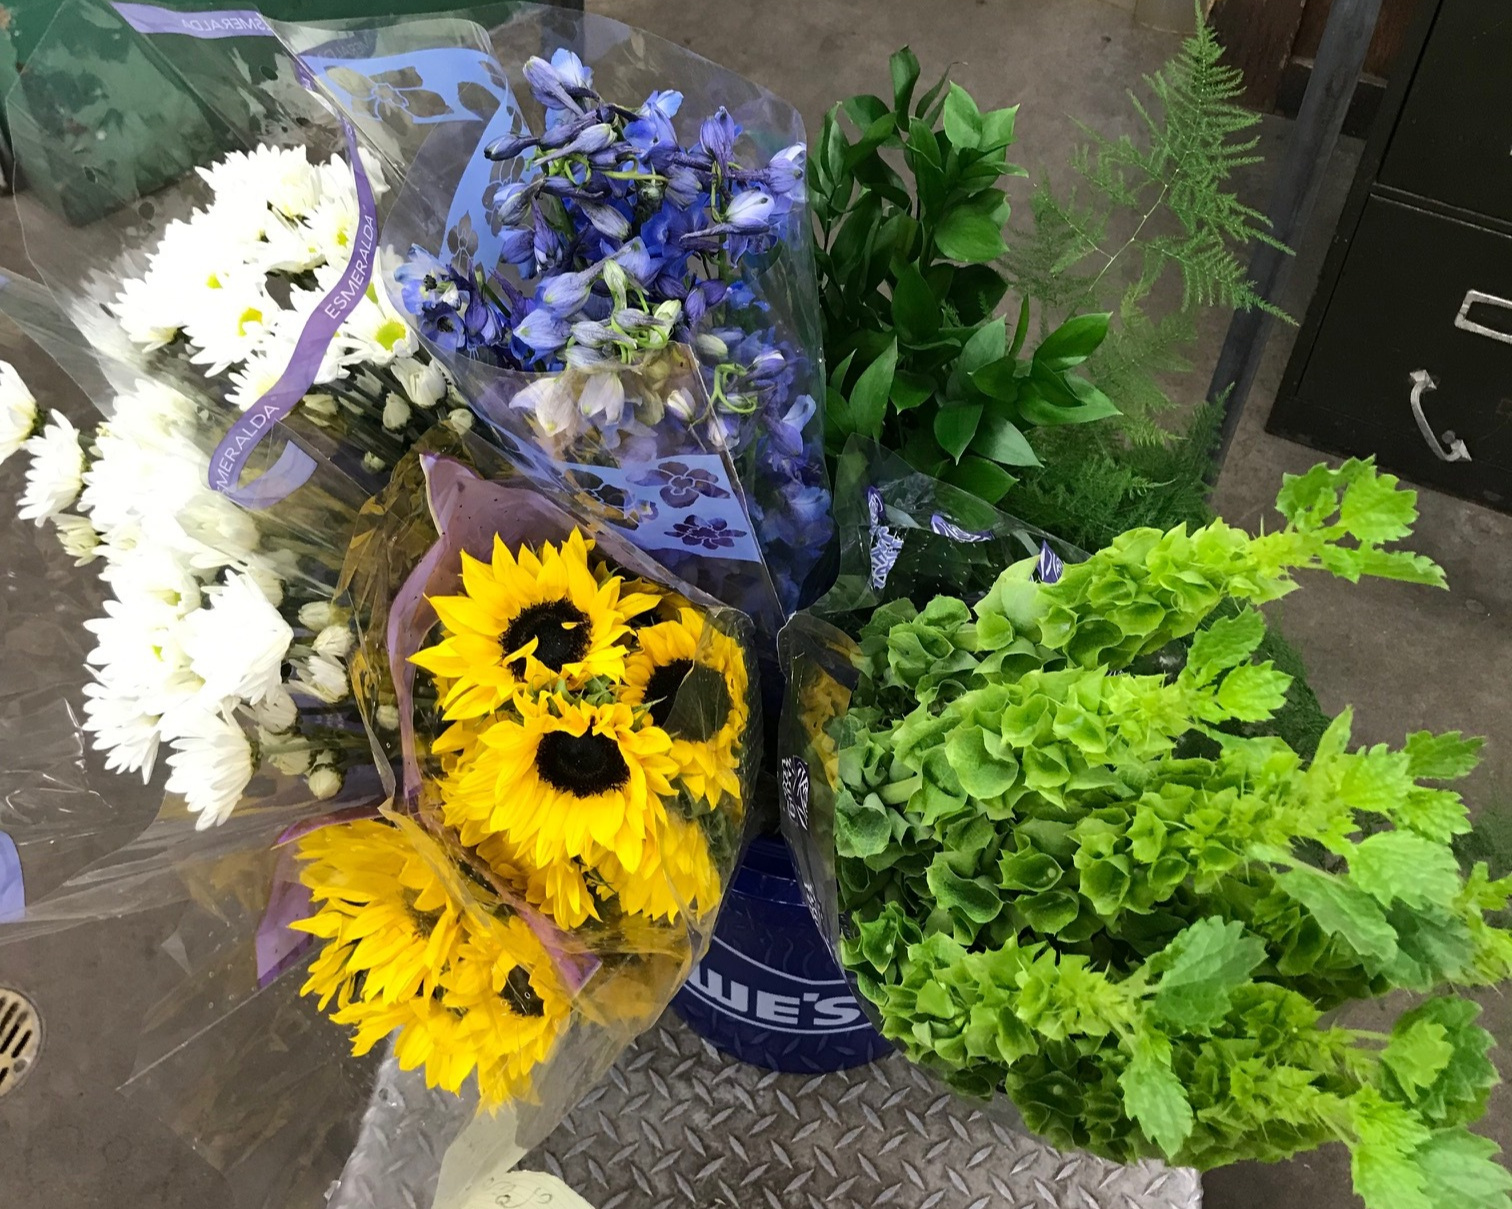 Small sunflowers, purple delphiniums, white pom pom daisies, green bells of Ireland, plumosa fern and Israeli ruscus.